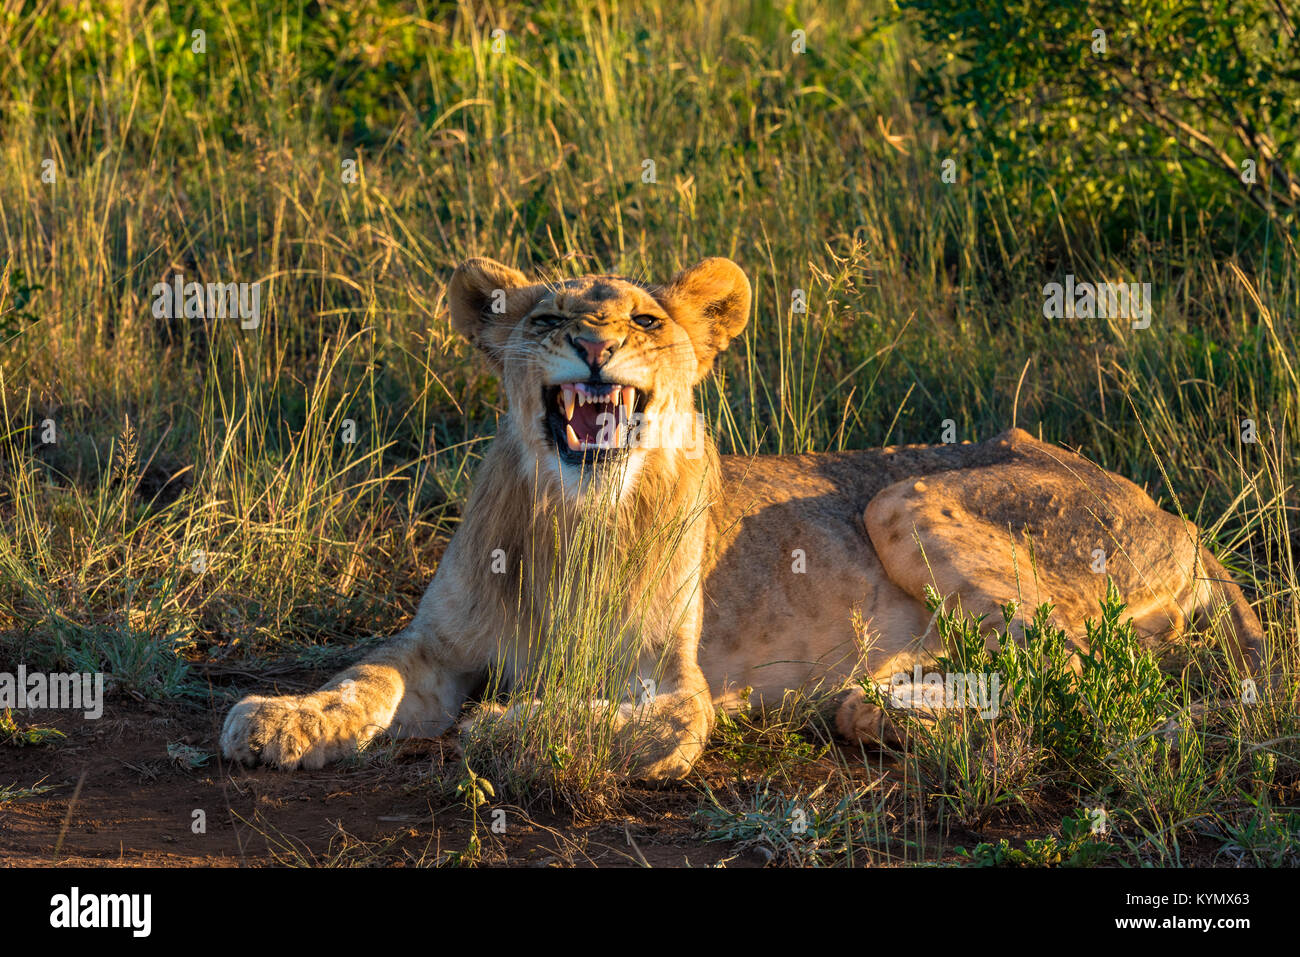 A lion in the Savanna bares her teeth - Stock Image